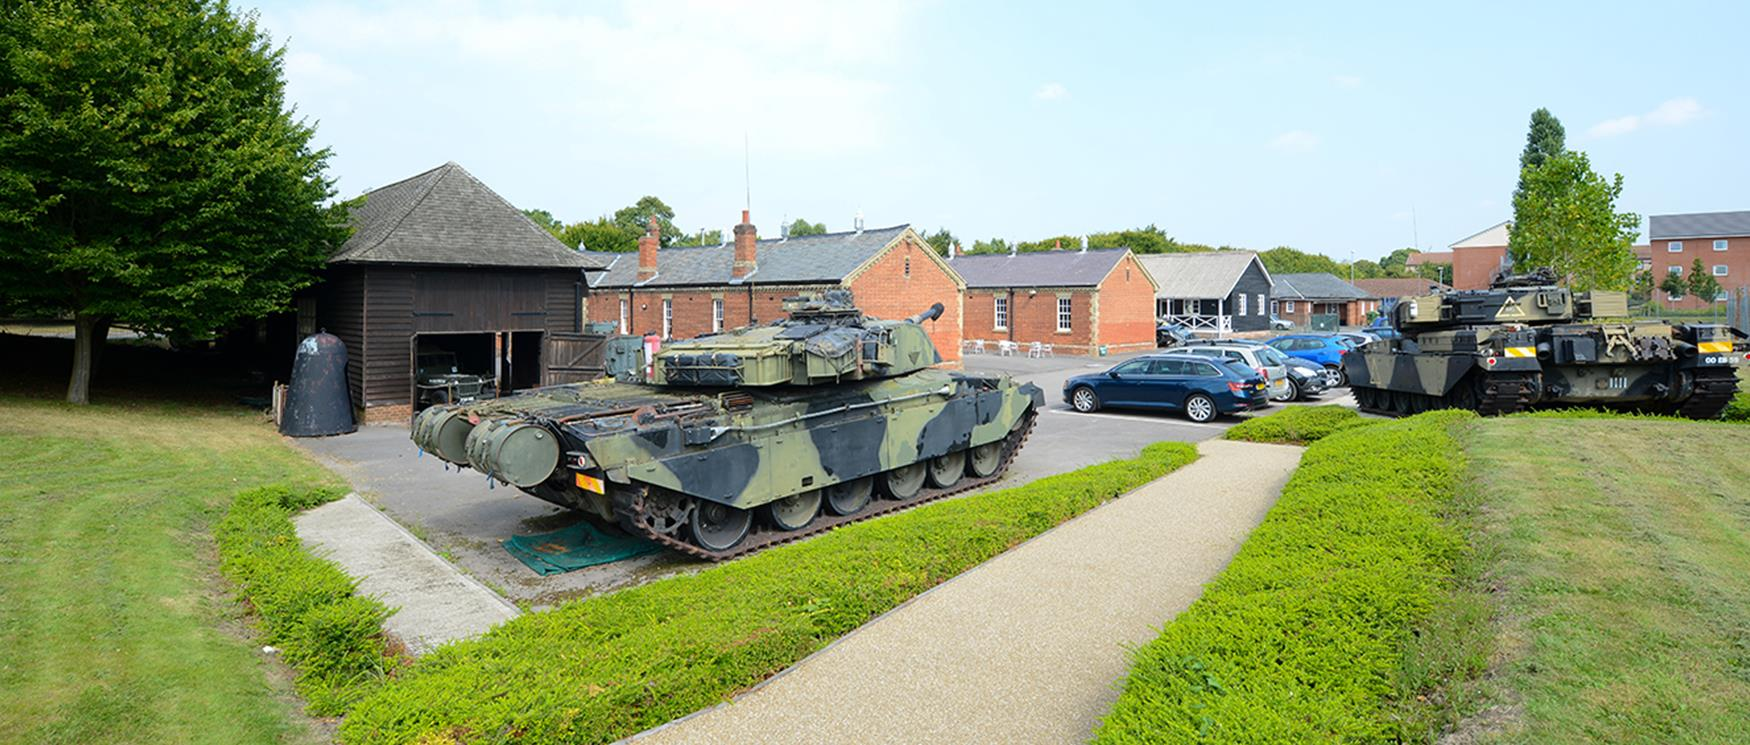 Discount Vouchers for Hampshire's Military Attractions